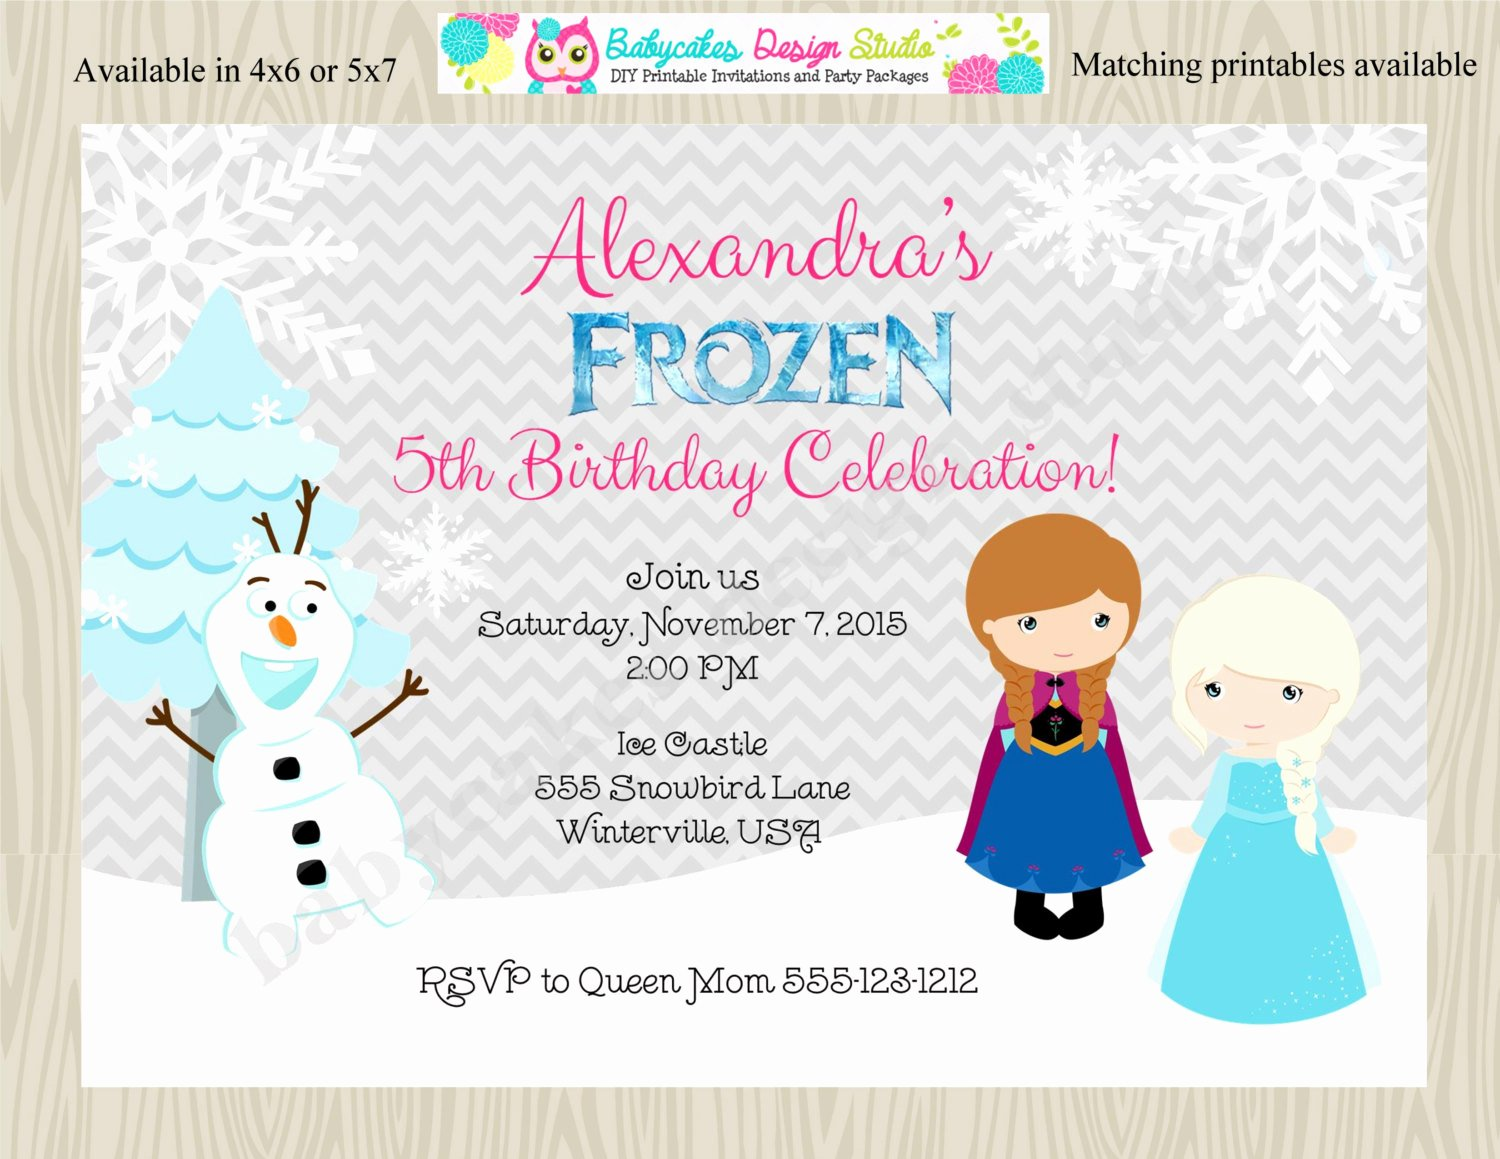 Frozen Birthday Party Invitations Inspirational Frozen Birthday Party Invitation Invite Anna Elsa Ice